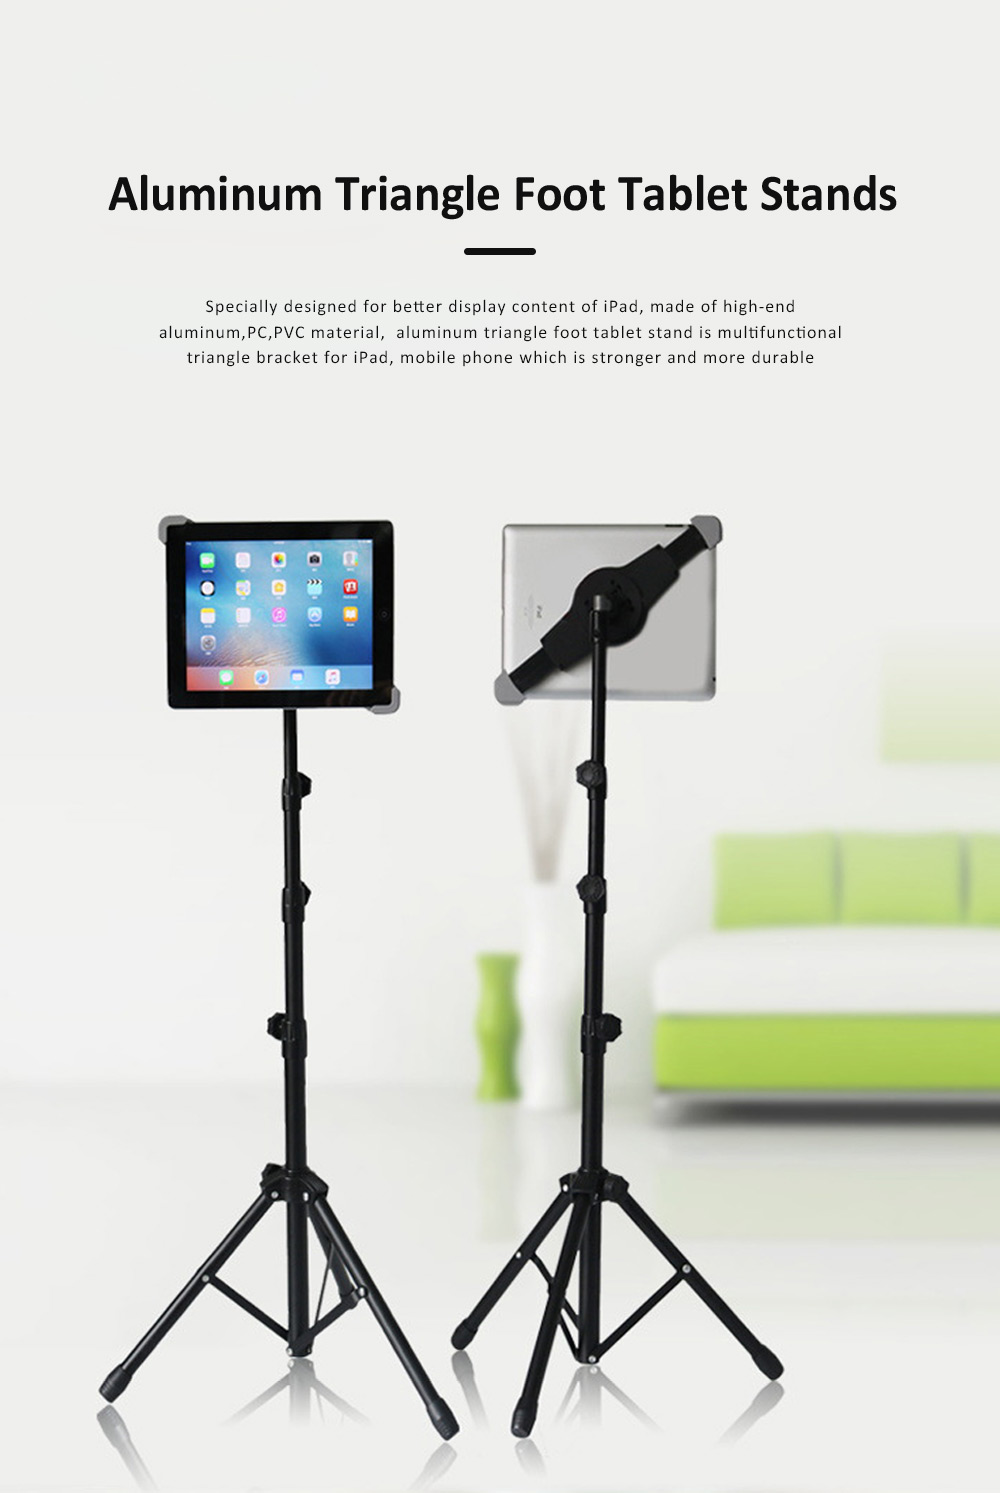 Aluminum Triangle Foot Tablet Stands, Retractable Mini Triangle Stands for iPad 7-12 inch 0